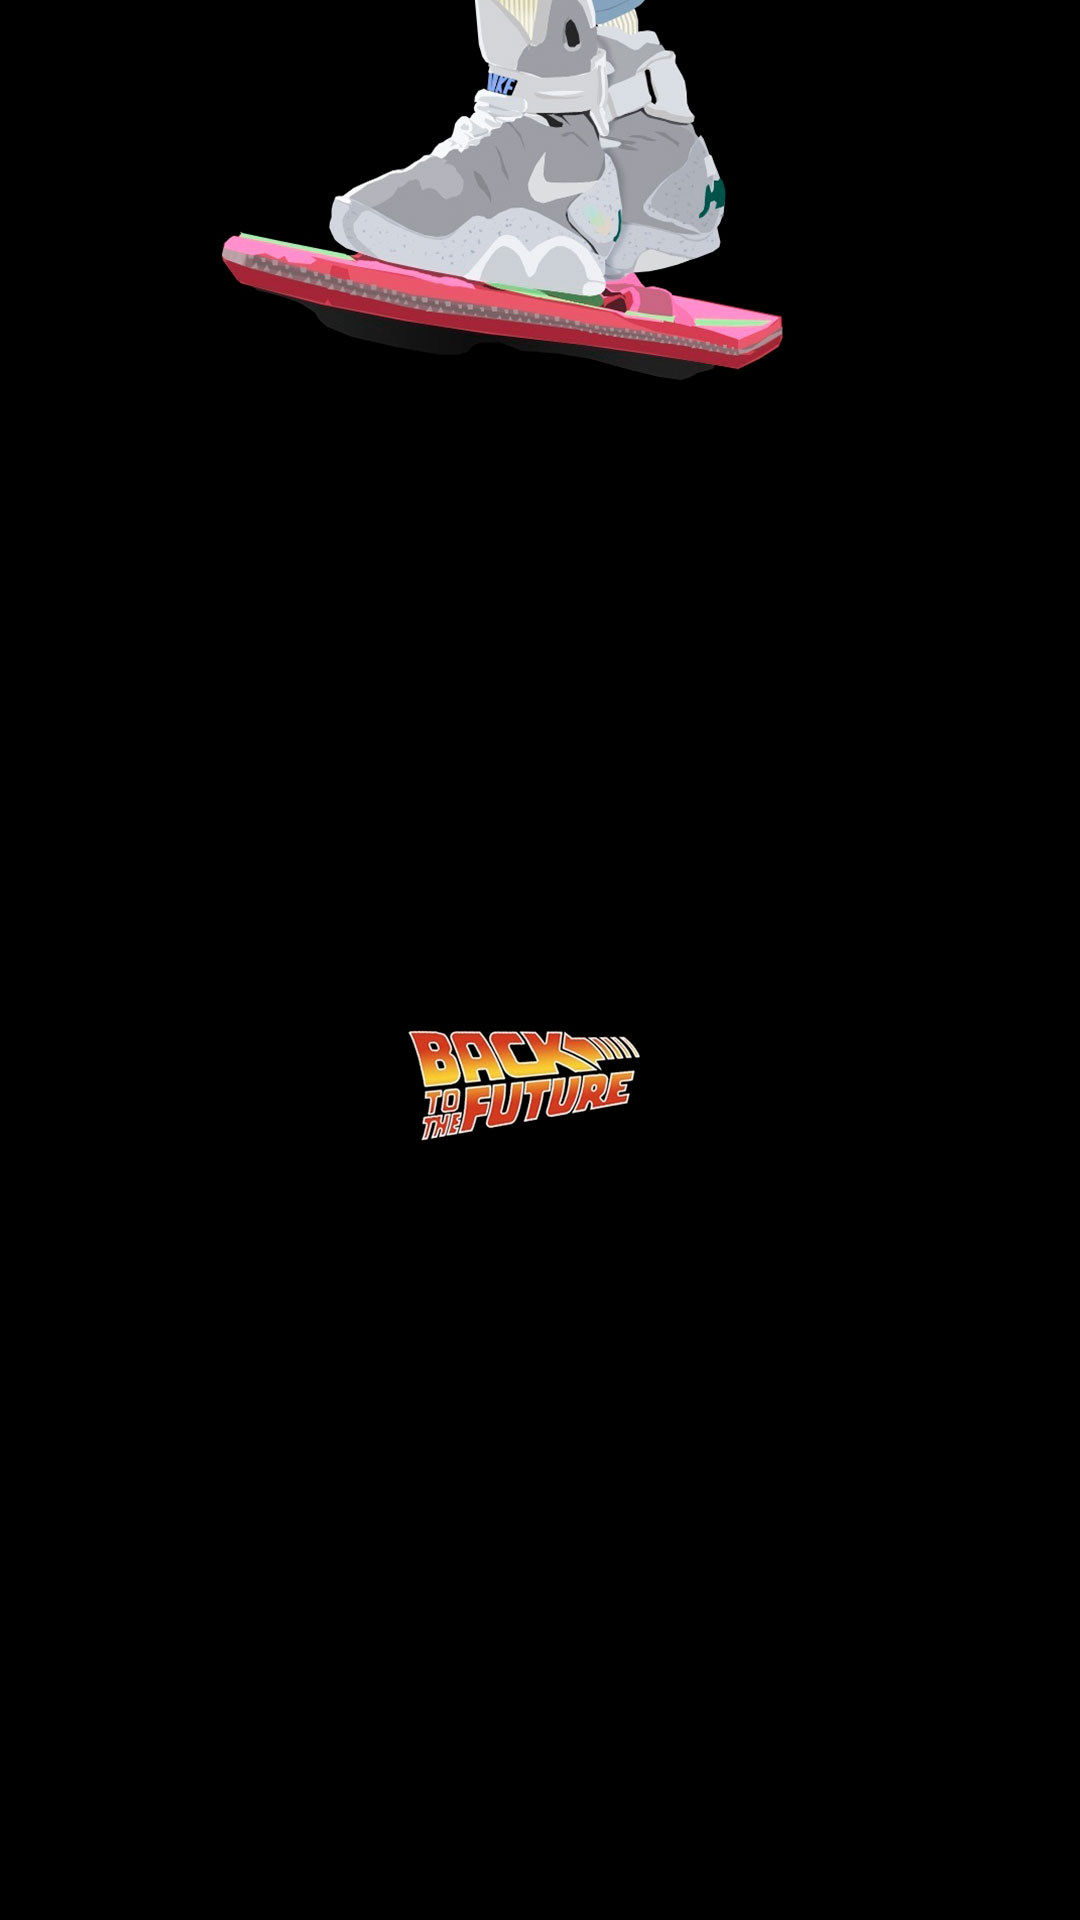 iPhone wallpaper back to the future hover board Back to the Future